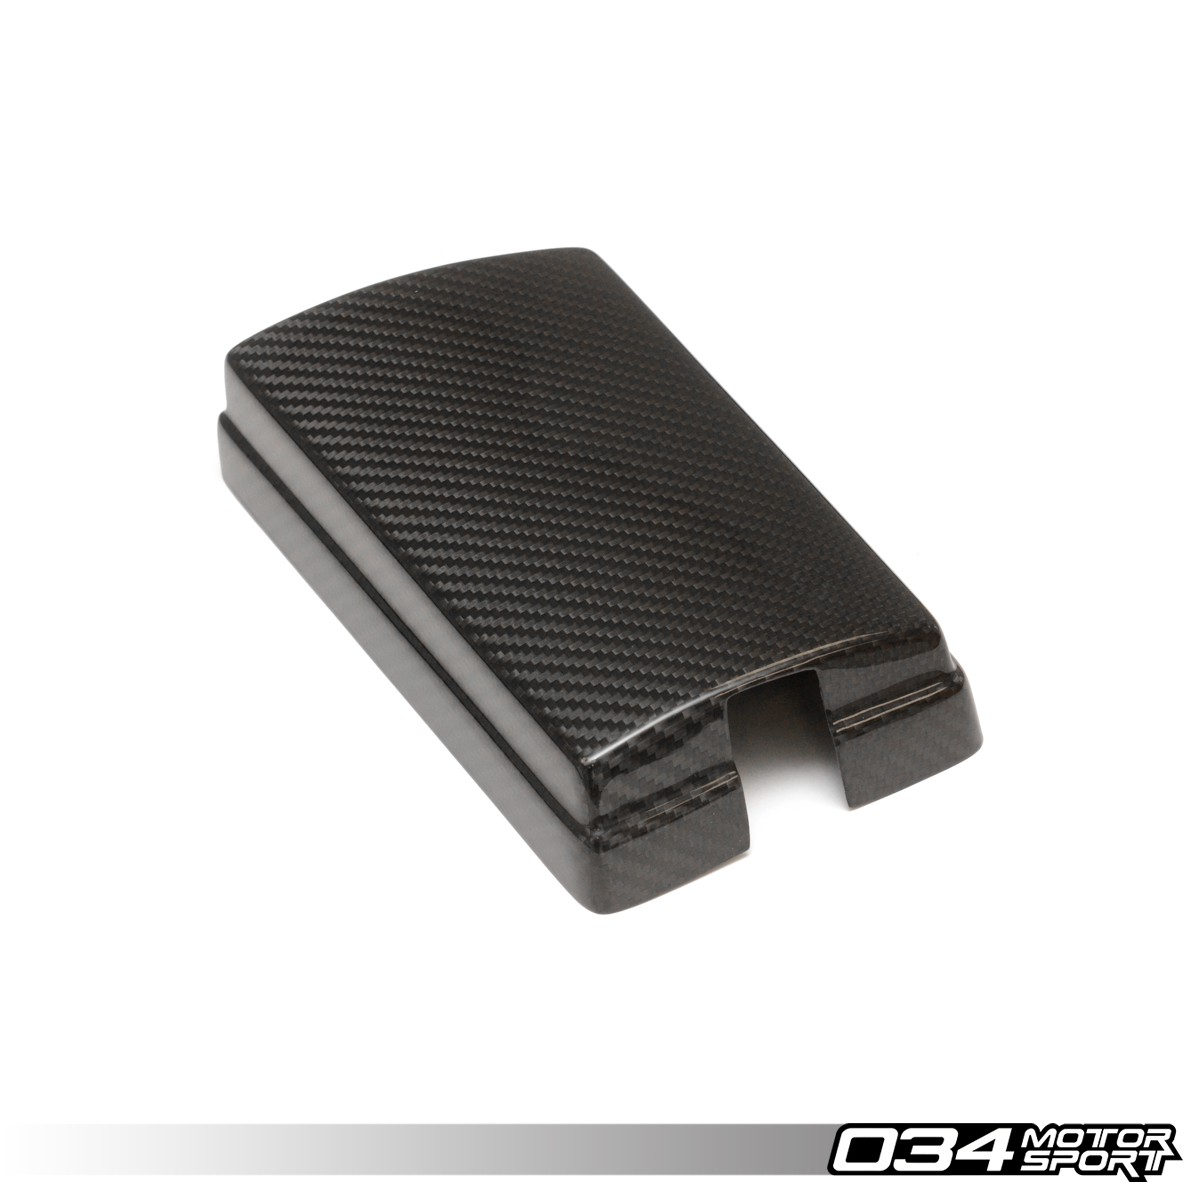 034motorsport carbon fiber fuse box cover audi 8v a3 s3 volkswagen mkvii golf r gti mqb 034 1zz 0002 1 carbon fiber fuse box cover, mkvii volkswagen gti & golf r, 8v fuse box cover at reclaimingppi.co